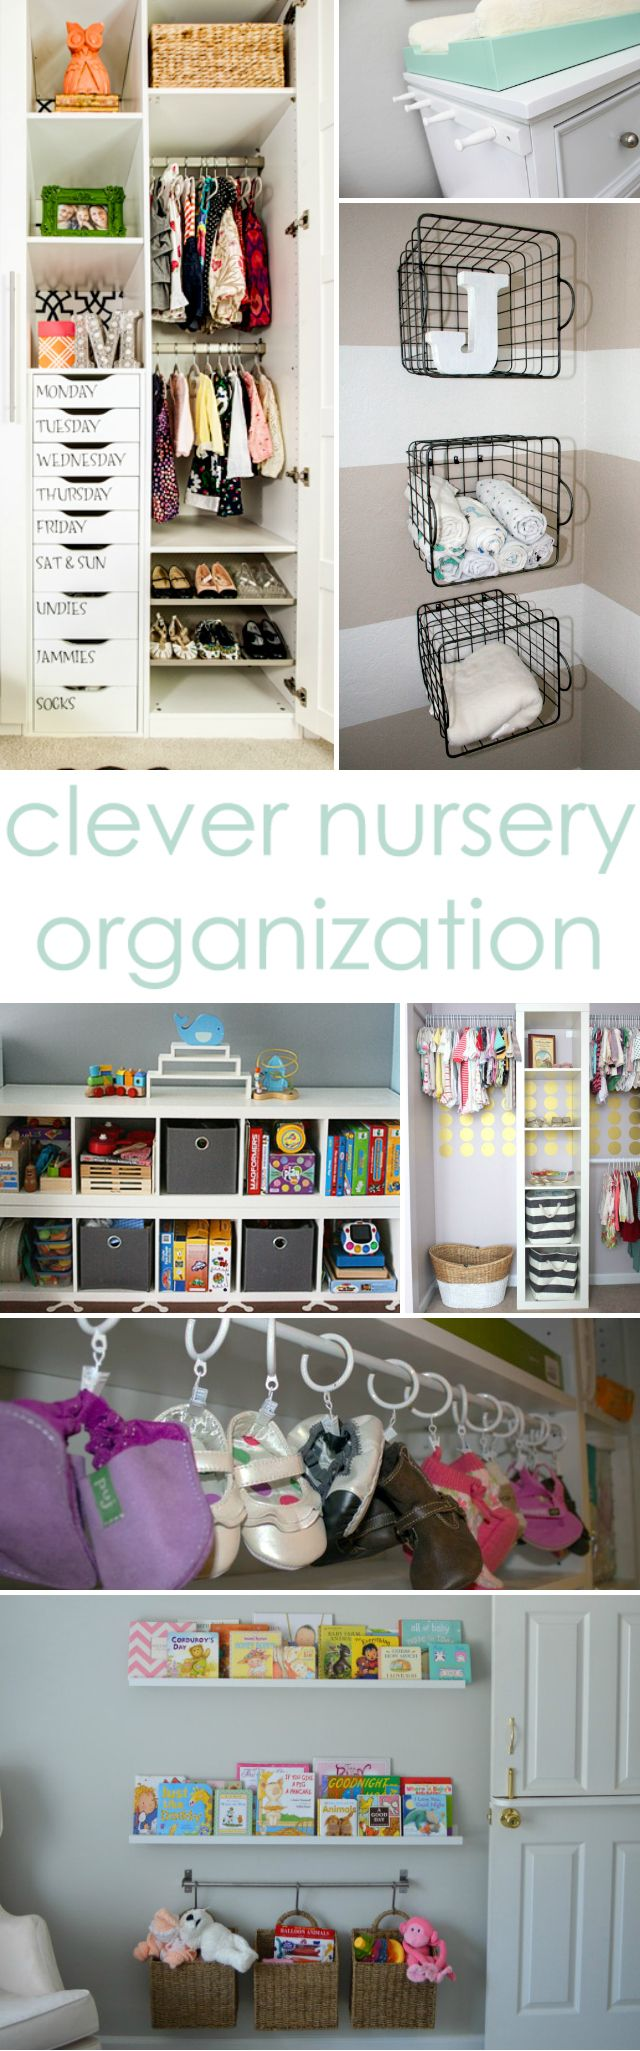 Clever Nursery Organization Ideas from Project Nursery - love the idea of baskets hung from the wall next to the changing table! #nursery #organization: Organizations Ideas, Projects Nurseries, Wire Baskets, Changing Tables, Organization Ideas, Baskets Hung, Nurseries Organizations, Kids Rooms, Clever Nurseries